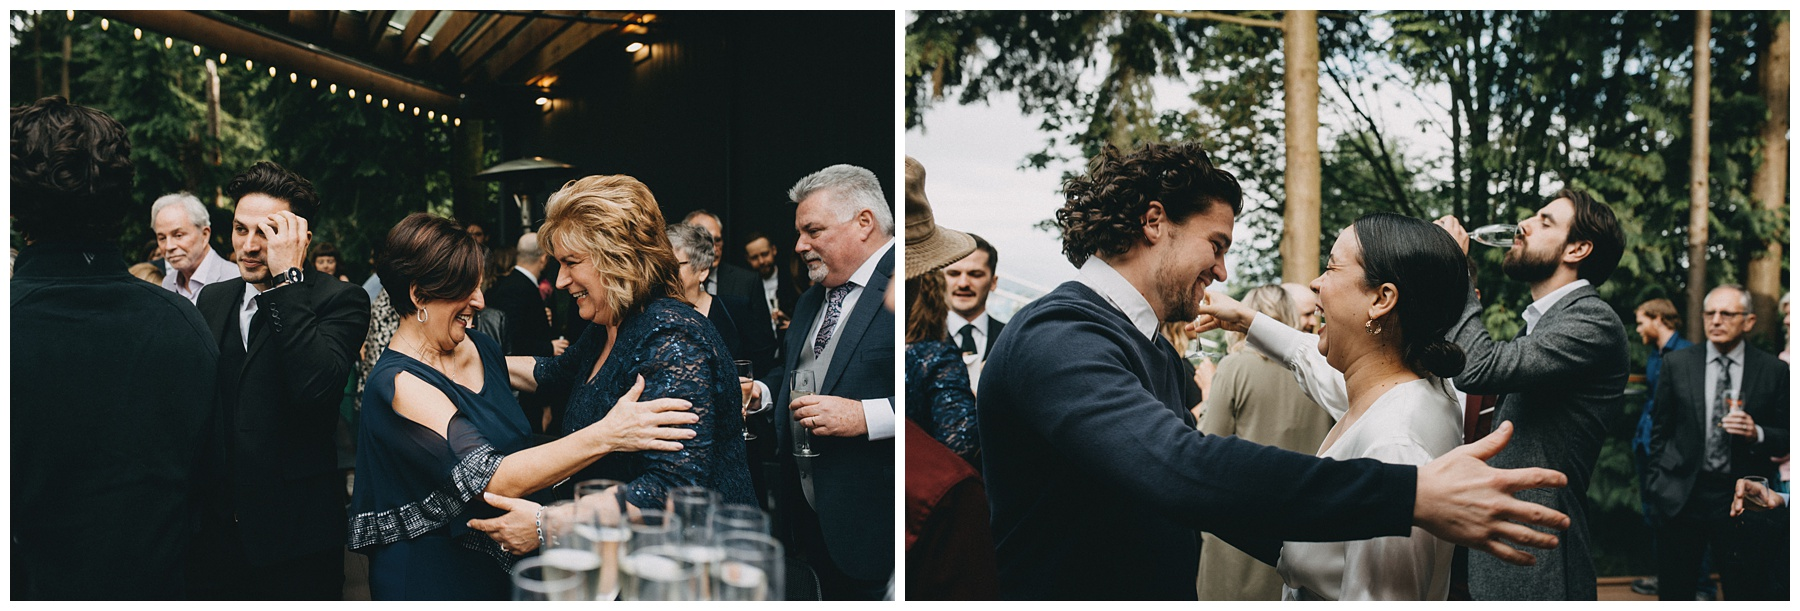 Vancouver wedding photographer stanley park_1112.jpg